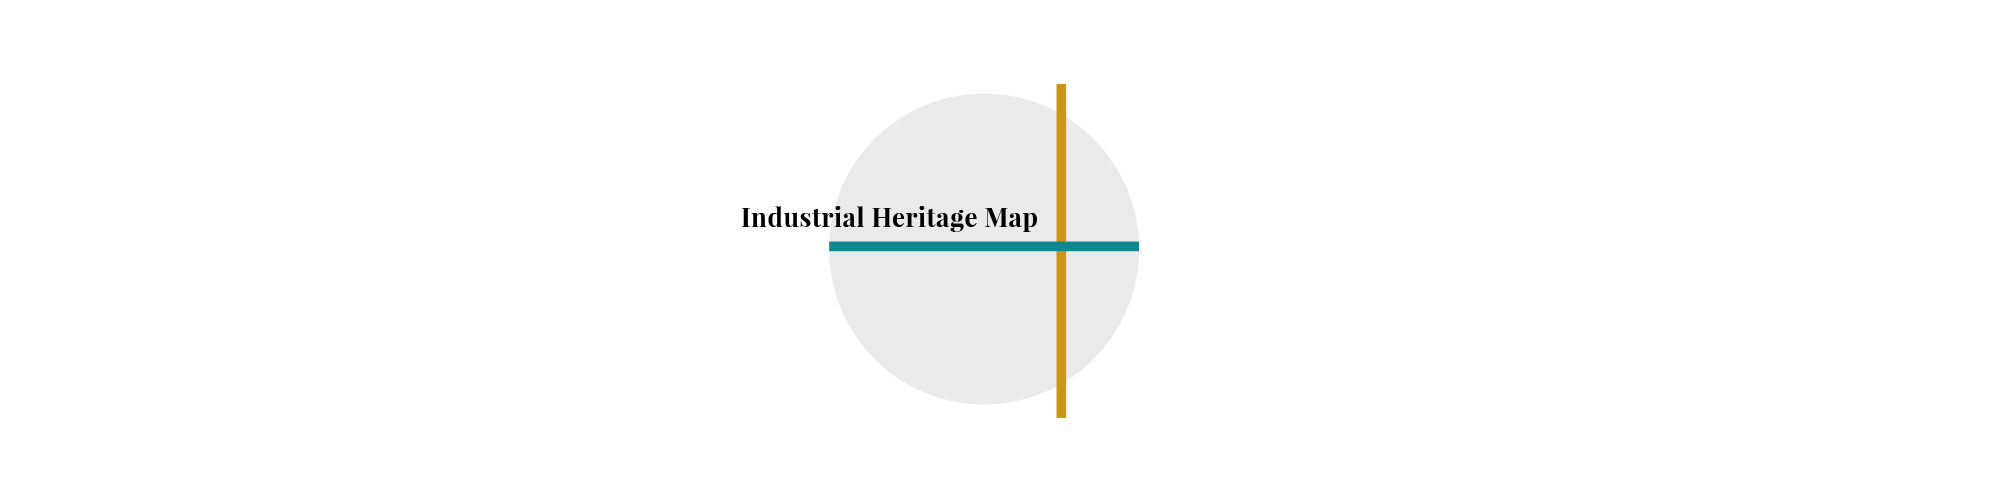 Industrial Heritage Map